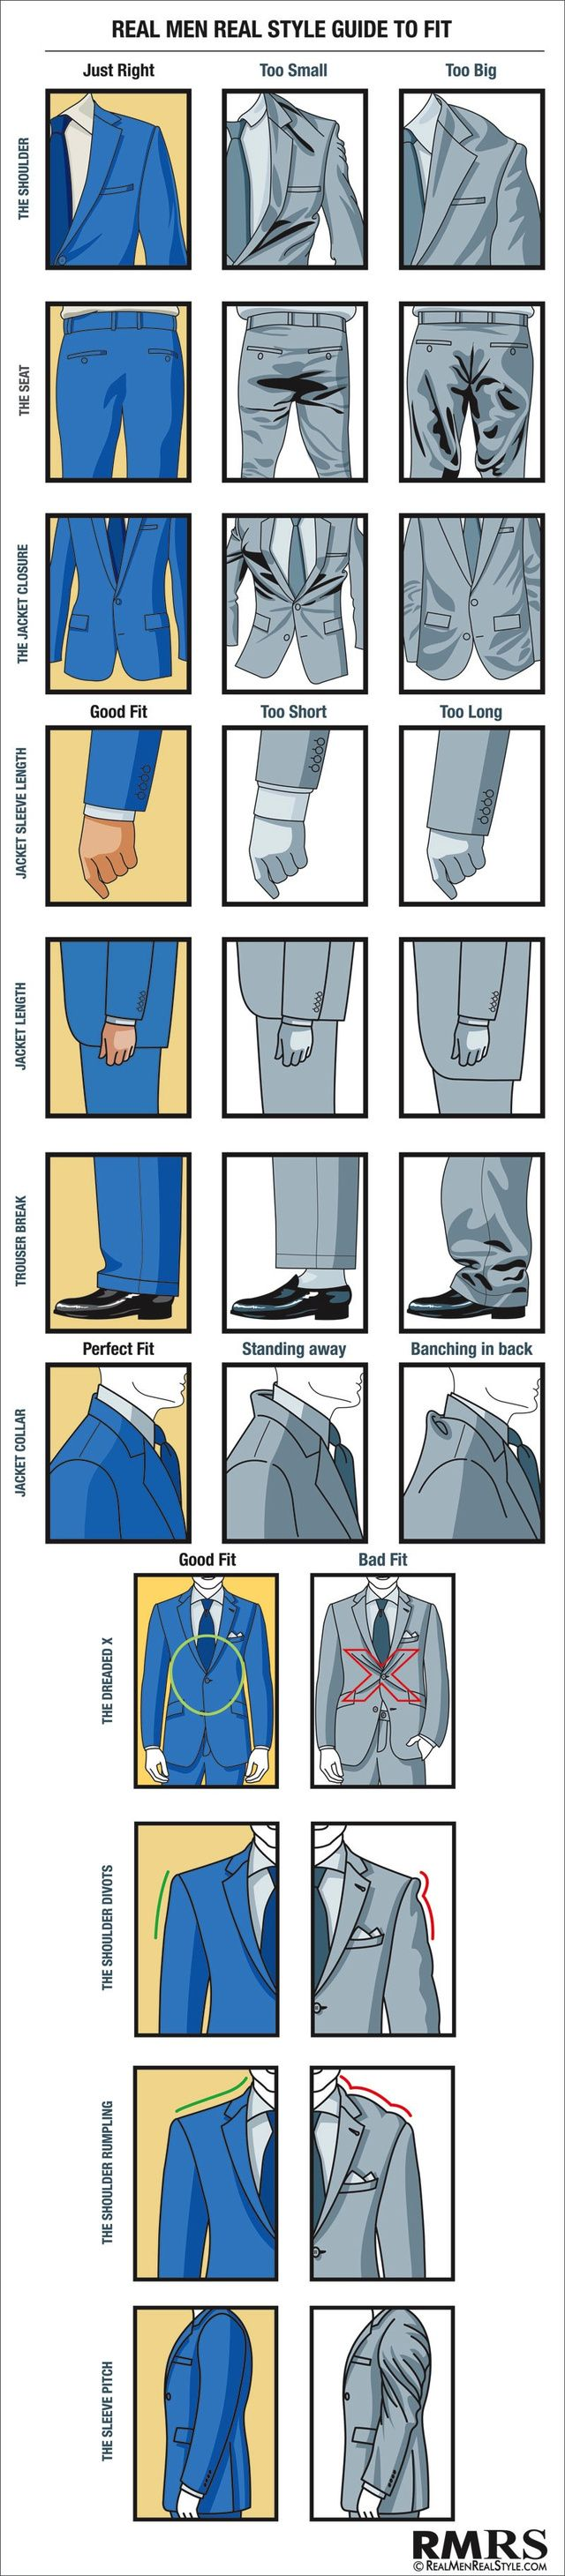 Visual guide to how a man's suit should fit